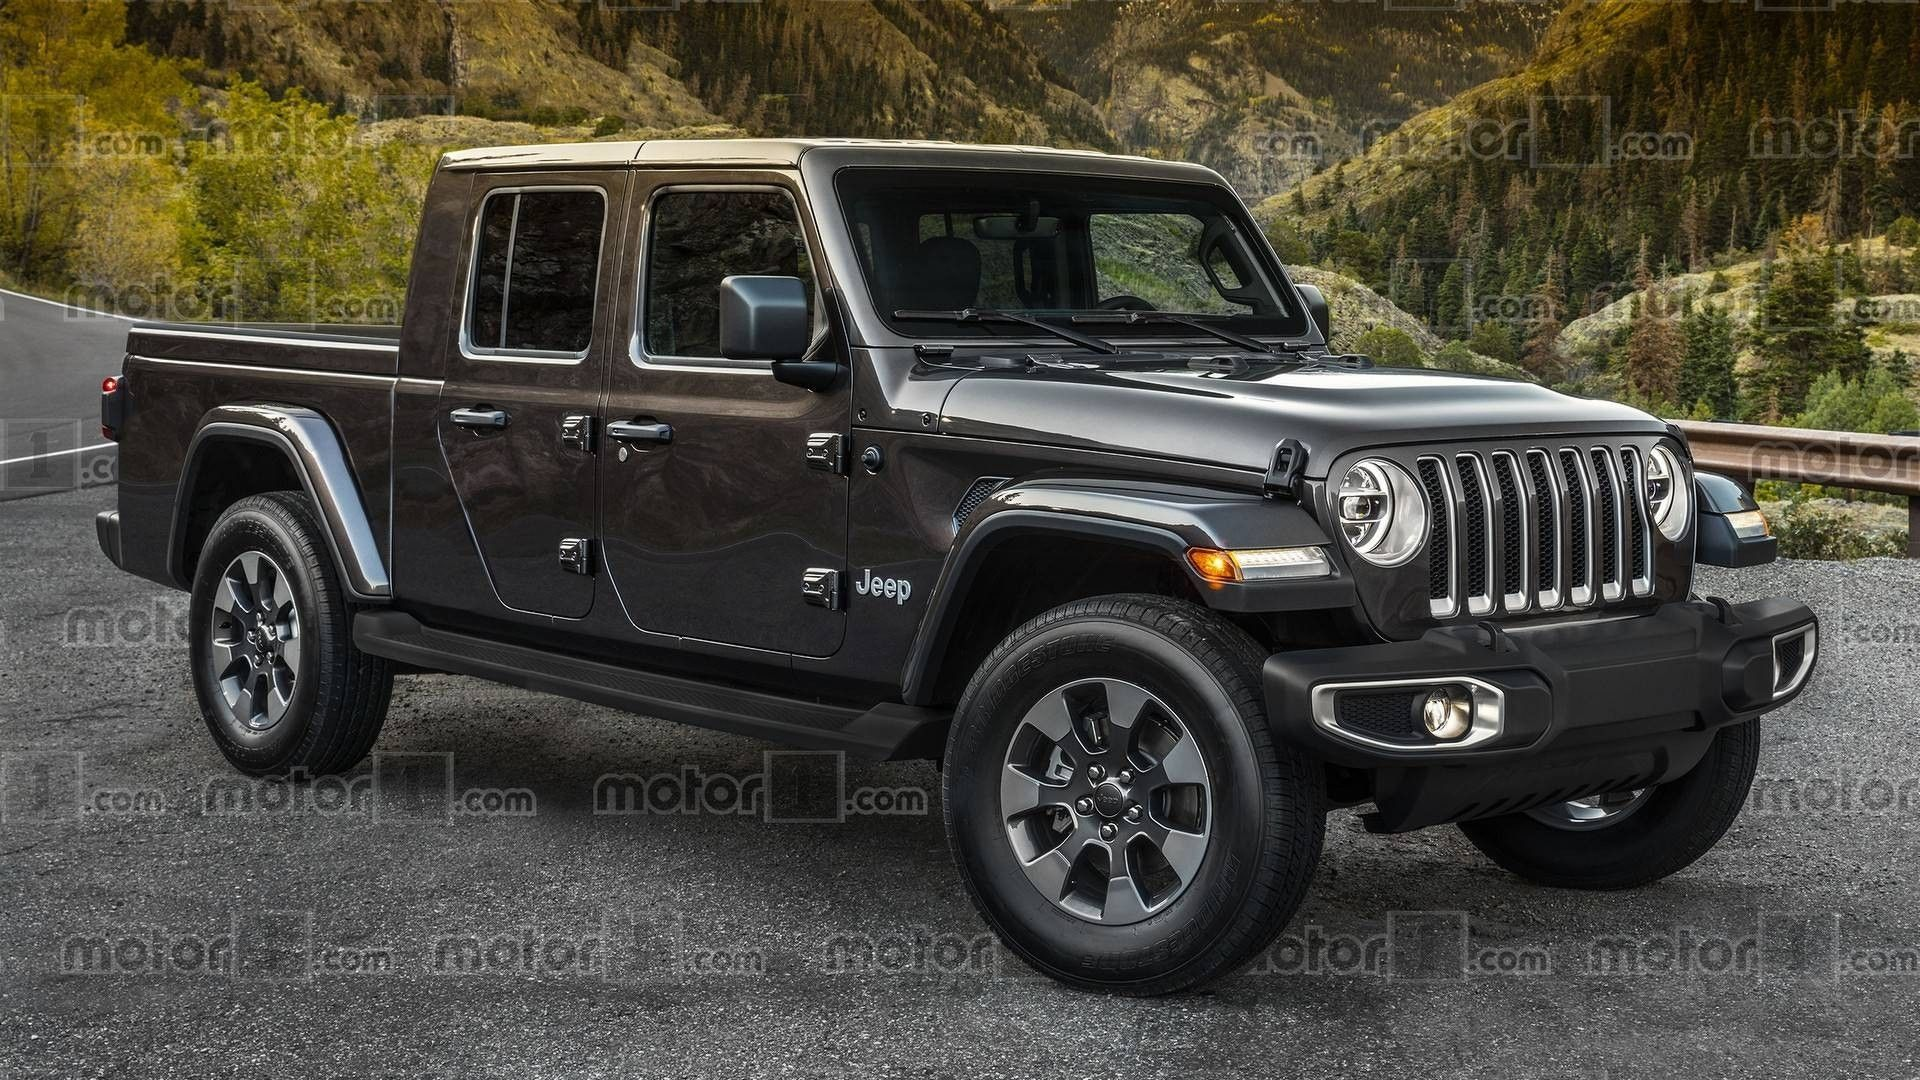 2019 Jeep Unlimited Review And Specs Jeep Wrangler Pickup Jeep